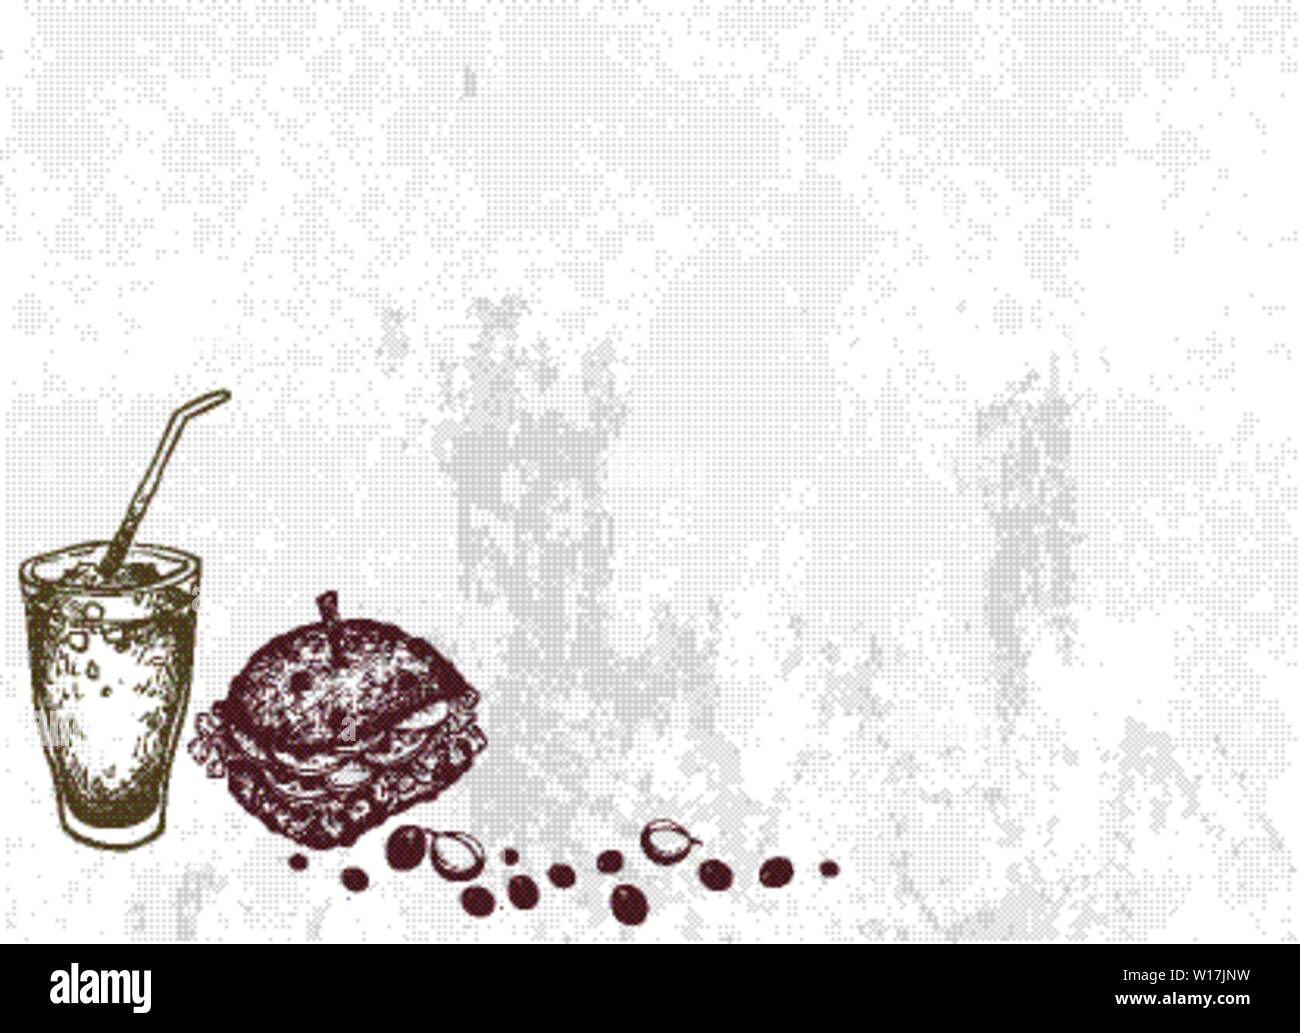 But Frist Coffee, Illustration Hand Drawn Sketch of Delicious Pork Burgery with Lettuce, Tomato, Onions and Cheese on Wheat Buns and Iced Coffee or Ic Stock Vector